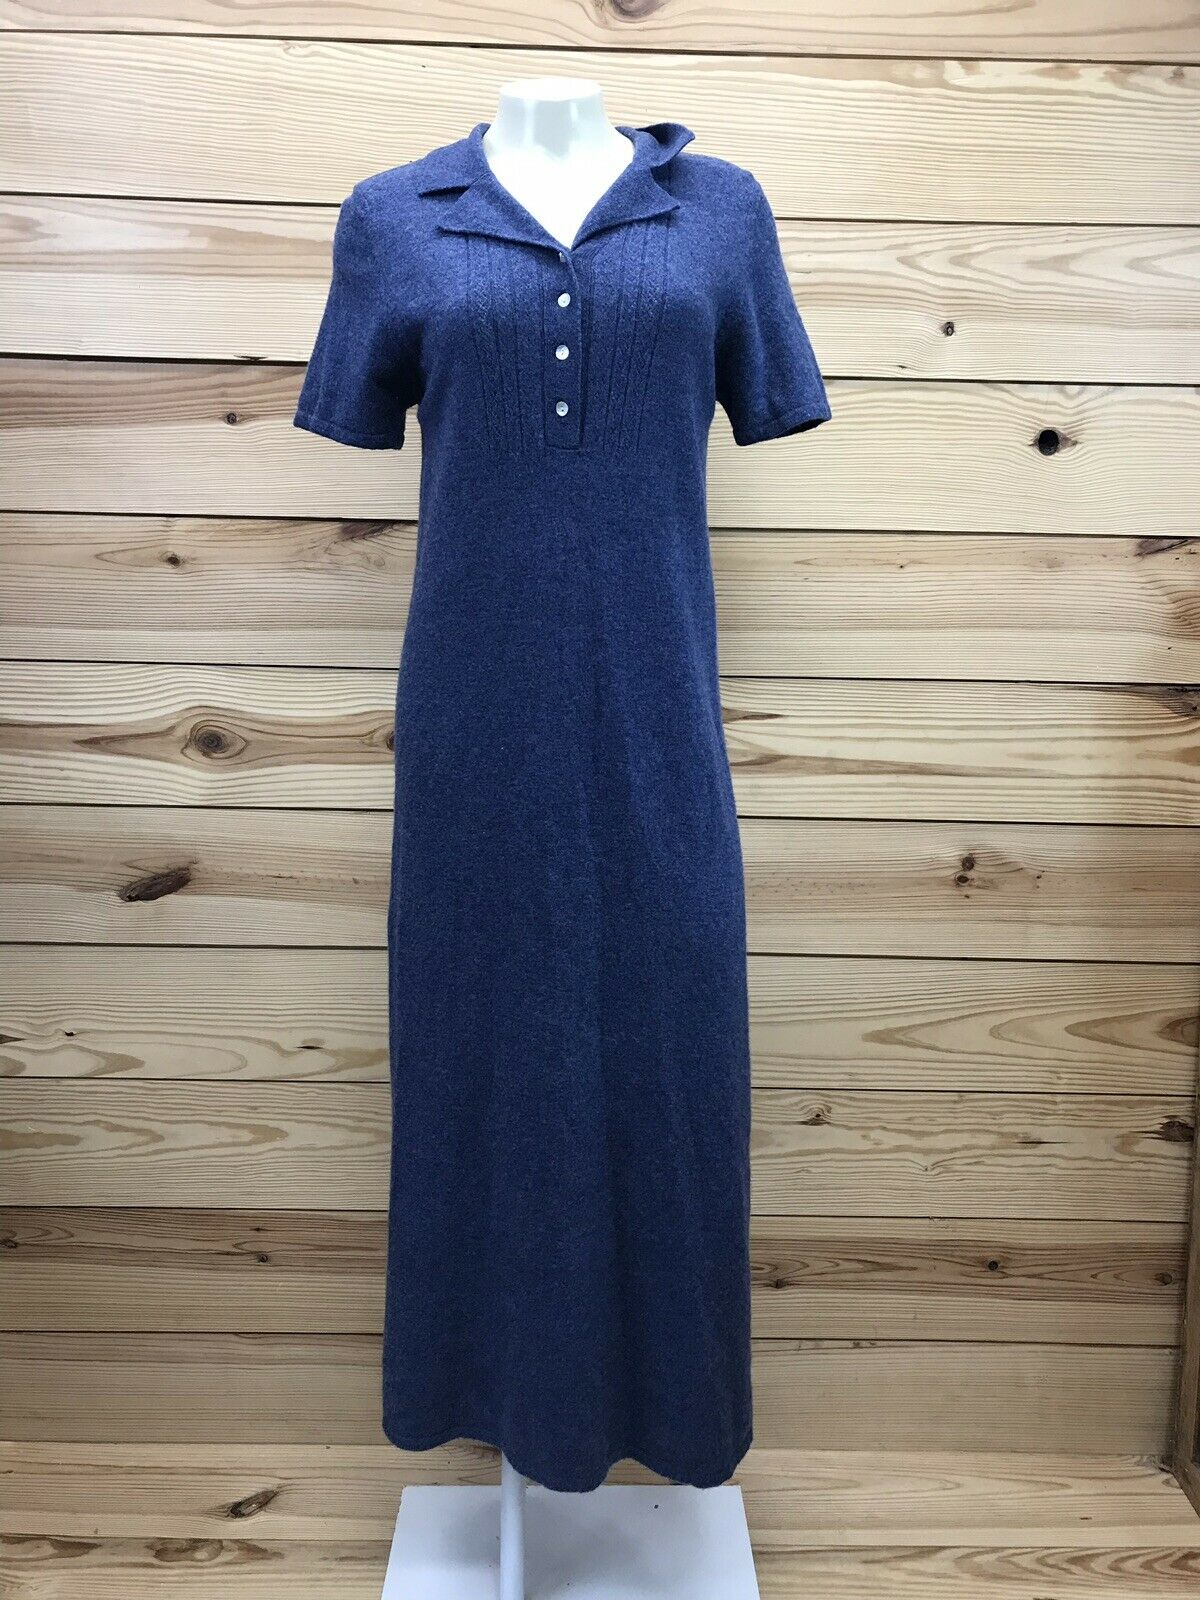 April Cornell Sweater Dress Small Lambswool bluee Short Sleeve Maxi Collared B4